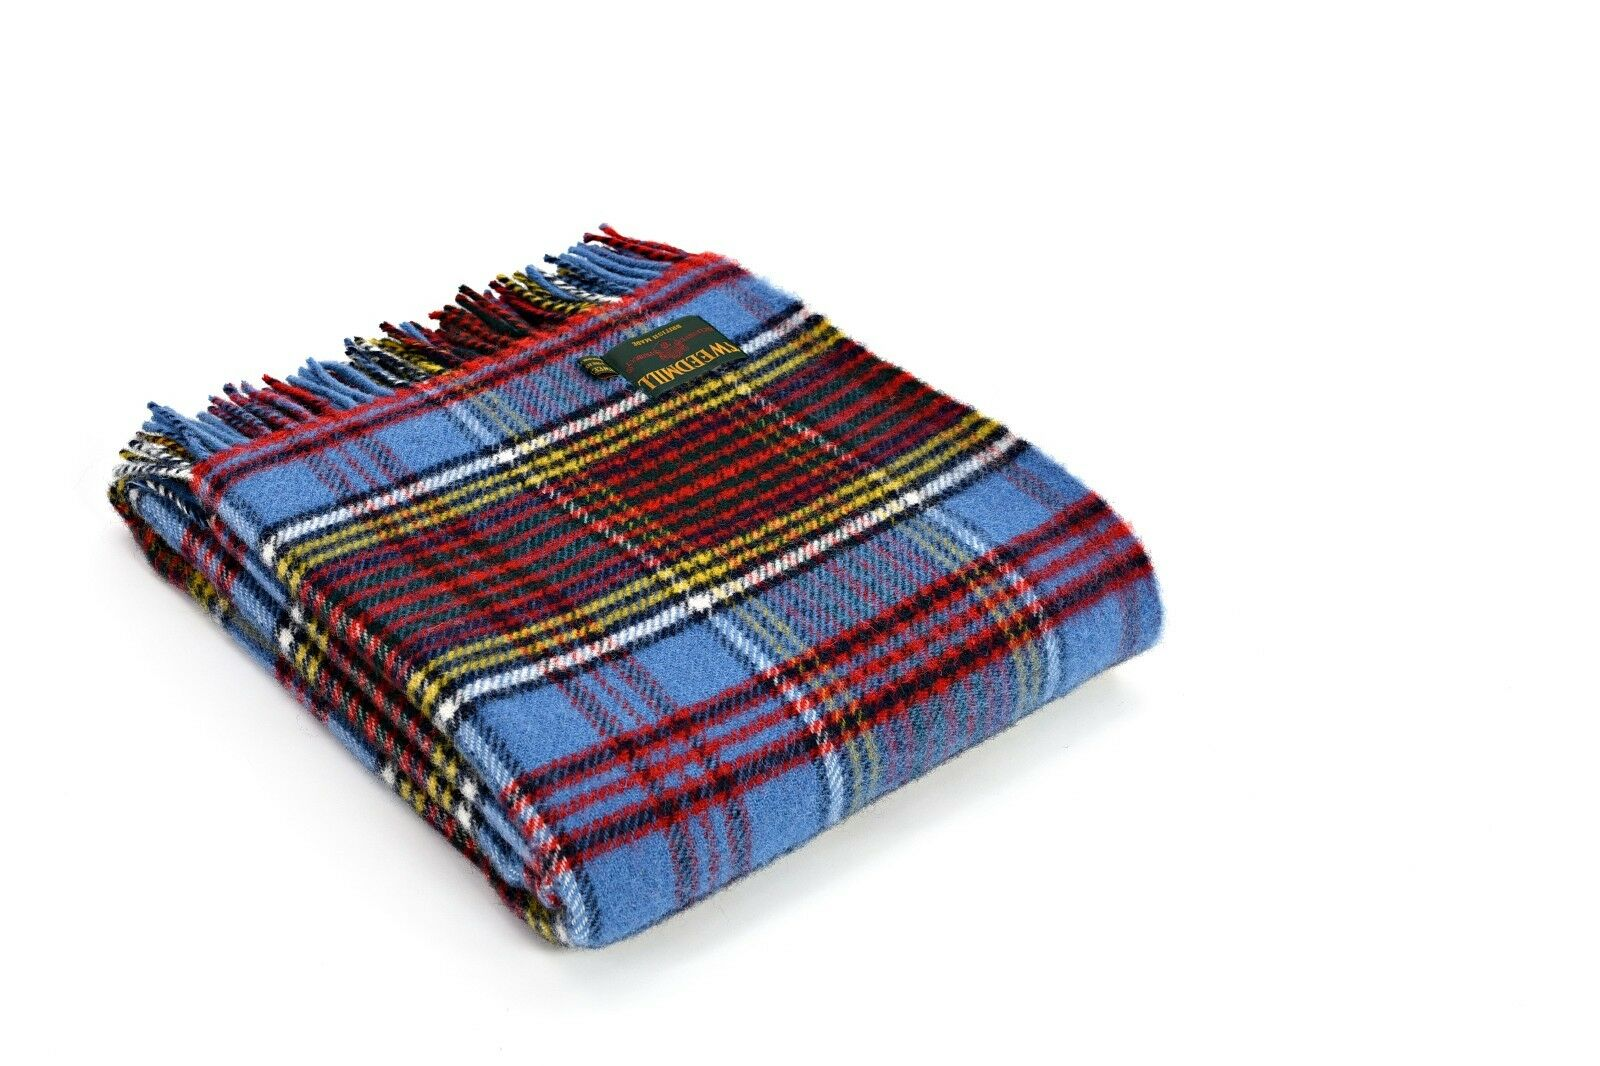 Tweedmill pure laine vierge plaquette Throw Blanket-Couleurs Blanket-Couleurs Blanket-Couleurs diverses 17d1ae